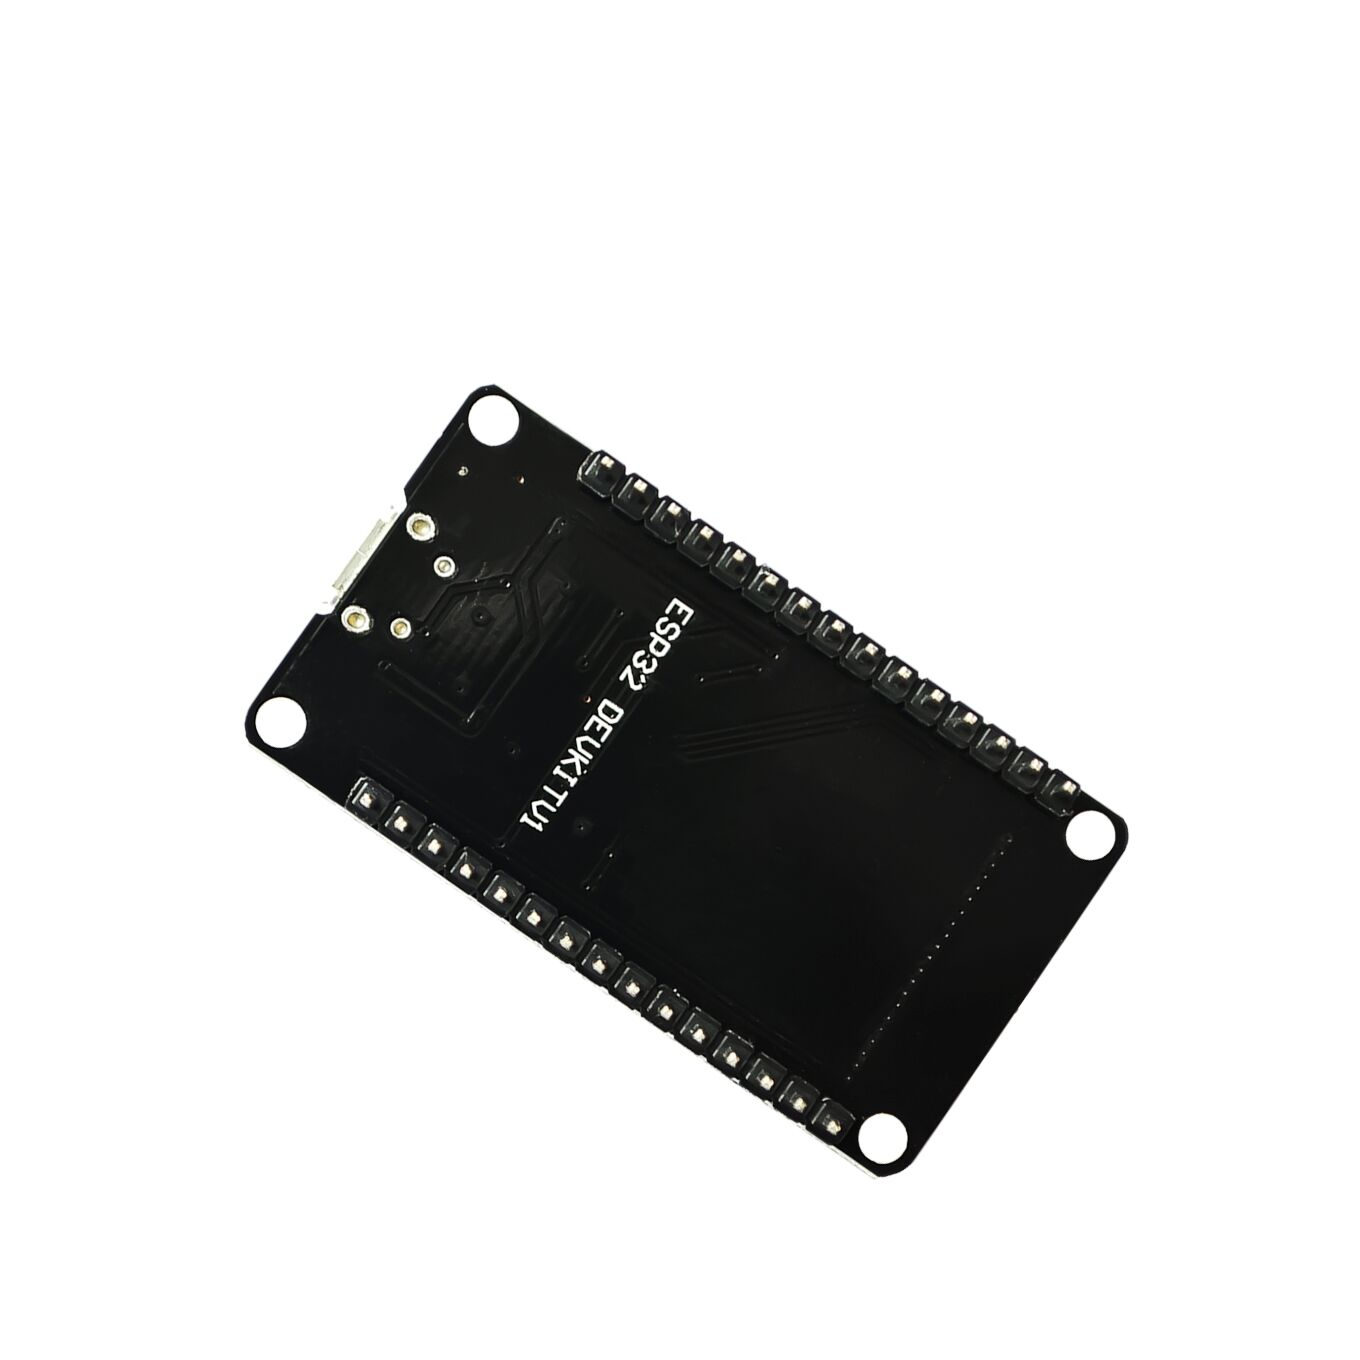 Image 3 - 5PCS Official DOIT ESP32 Development Board WiFi+Bluetooth Ultra Low Power Consumption Dual Core ESP 32S ESP 32 Similar ESP8266-in Integrated Circuits from Electronic Components & Supplies